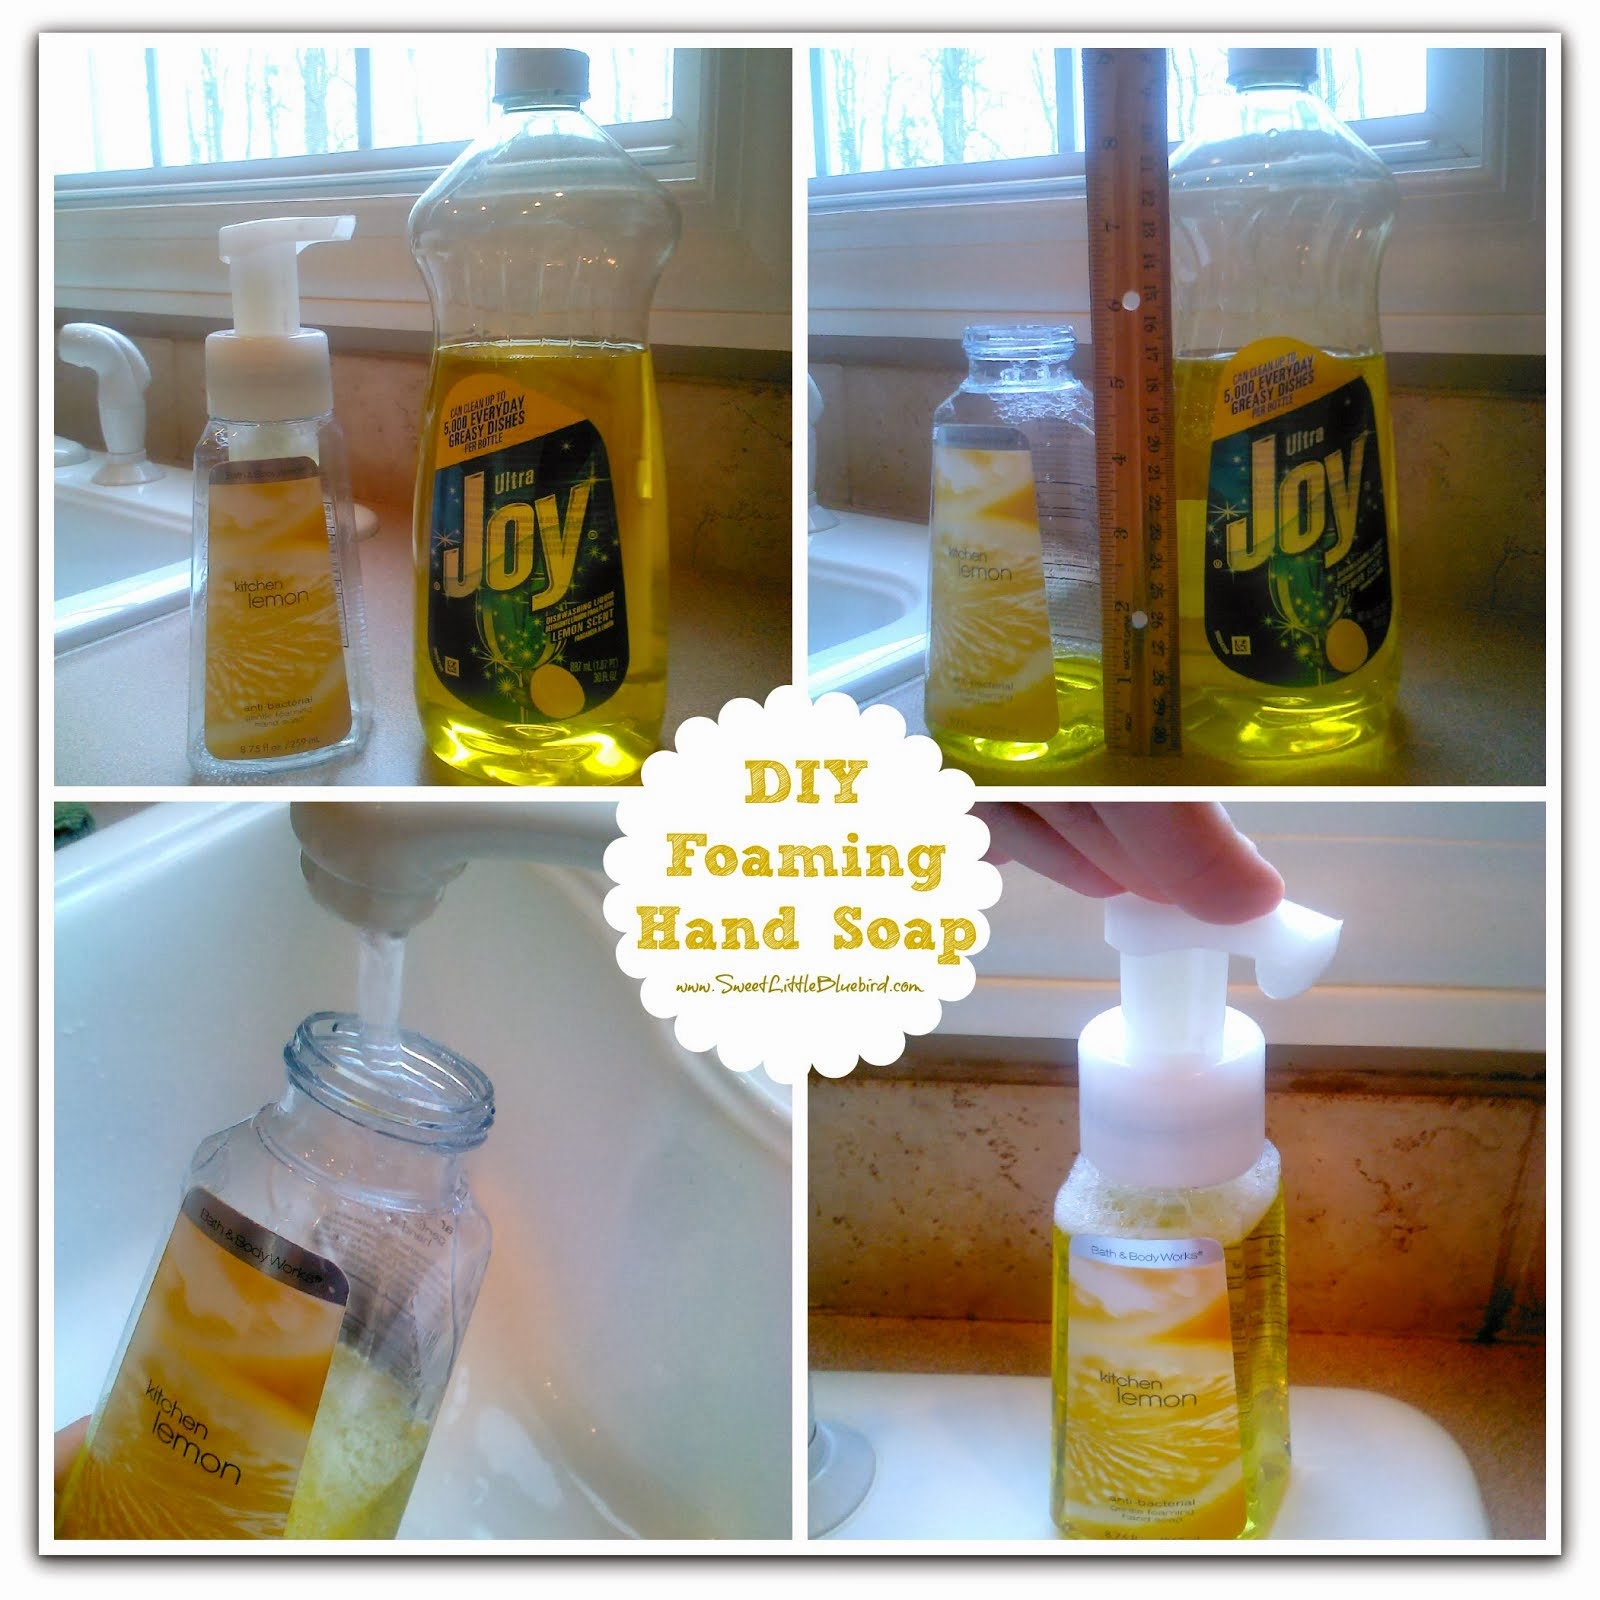 DIY FOAMING HAND SOAP!  #1 DIY TIP On Site - So simple to make!